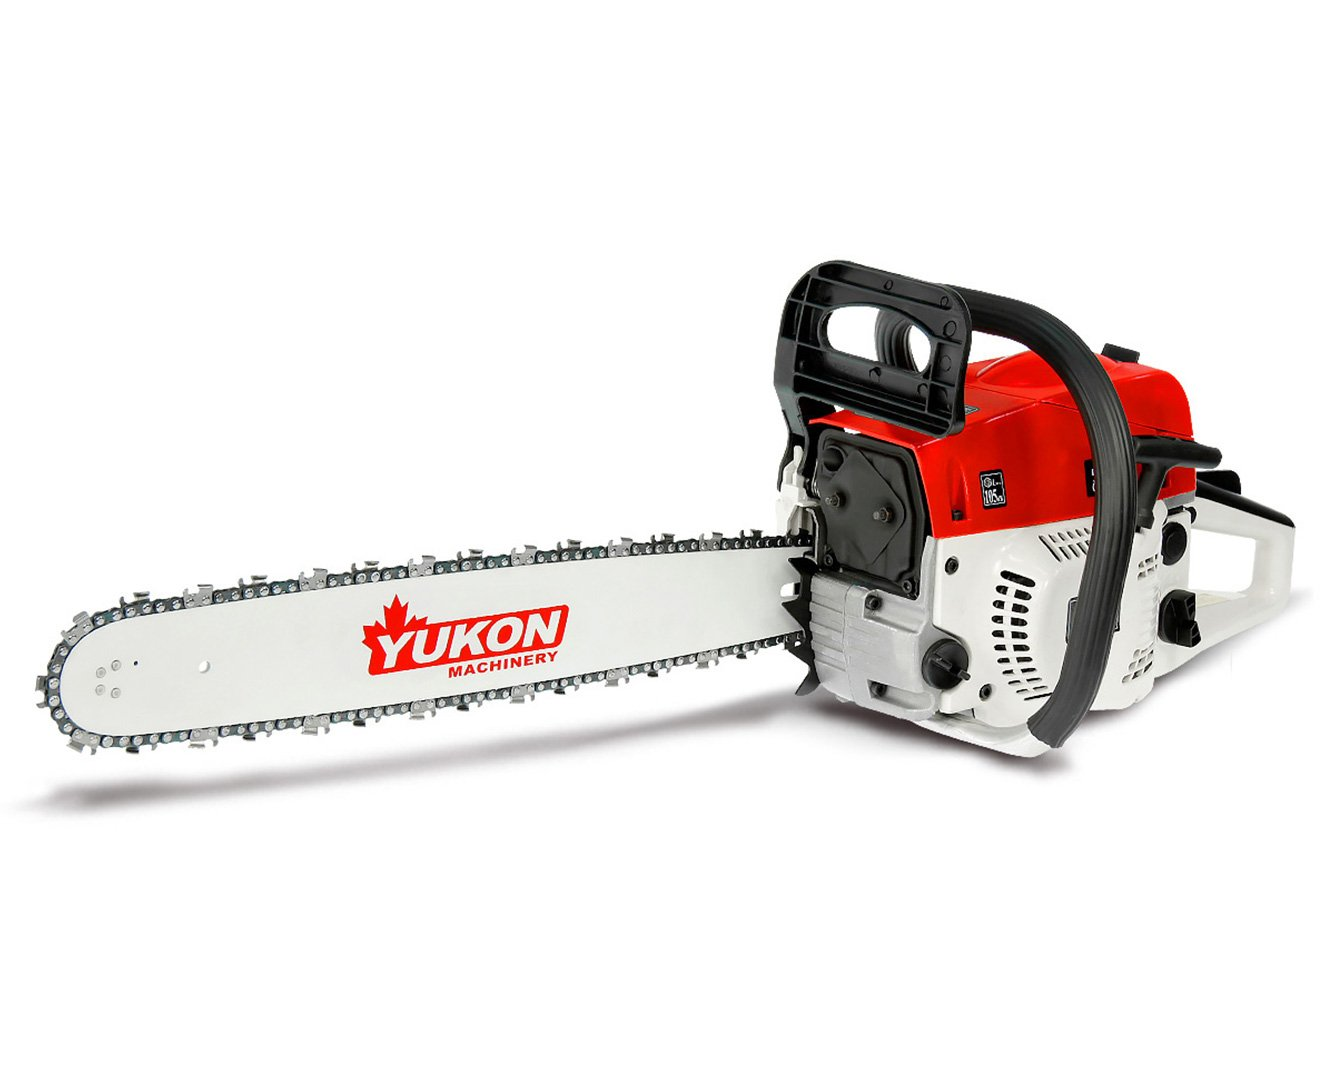 Yukon Chainsaw  52cc 20in Petrol Log Wood Cutter - $126.7